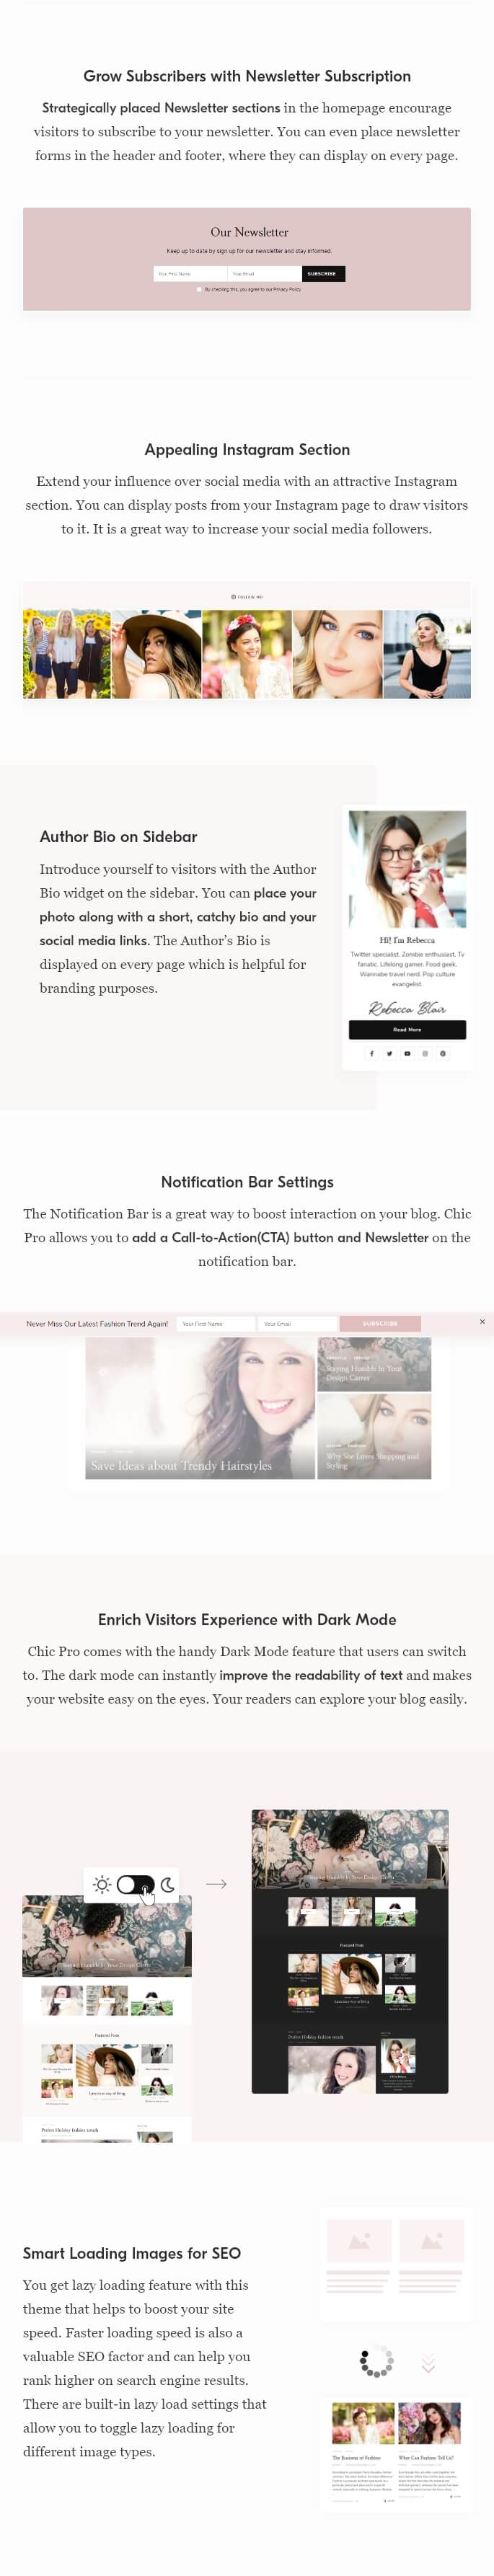 Features of Chic Pro WordPress Theme